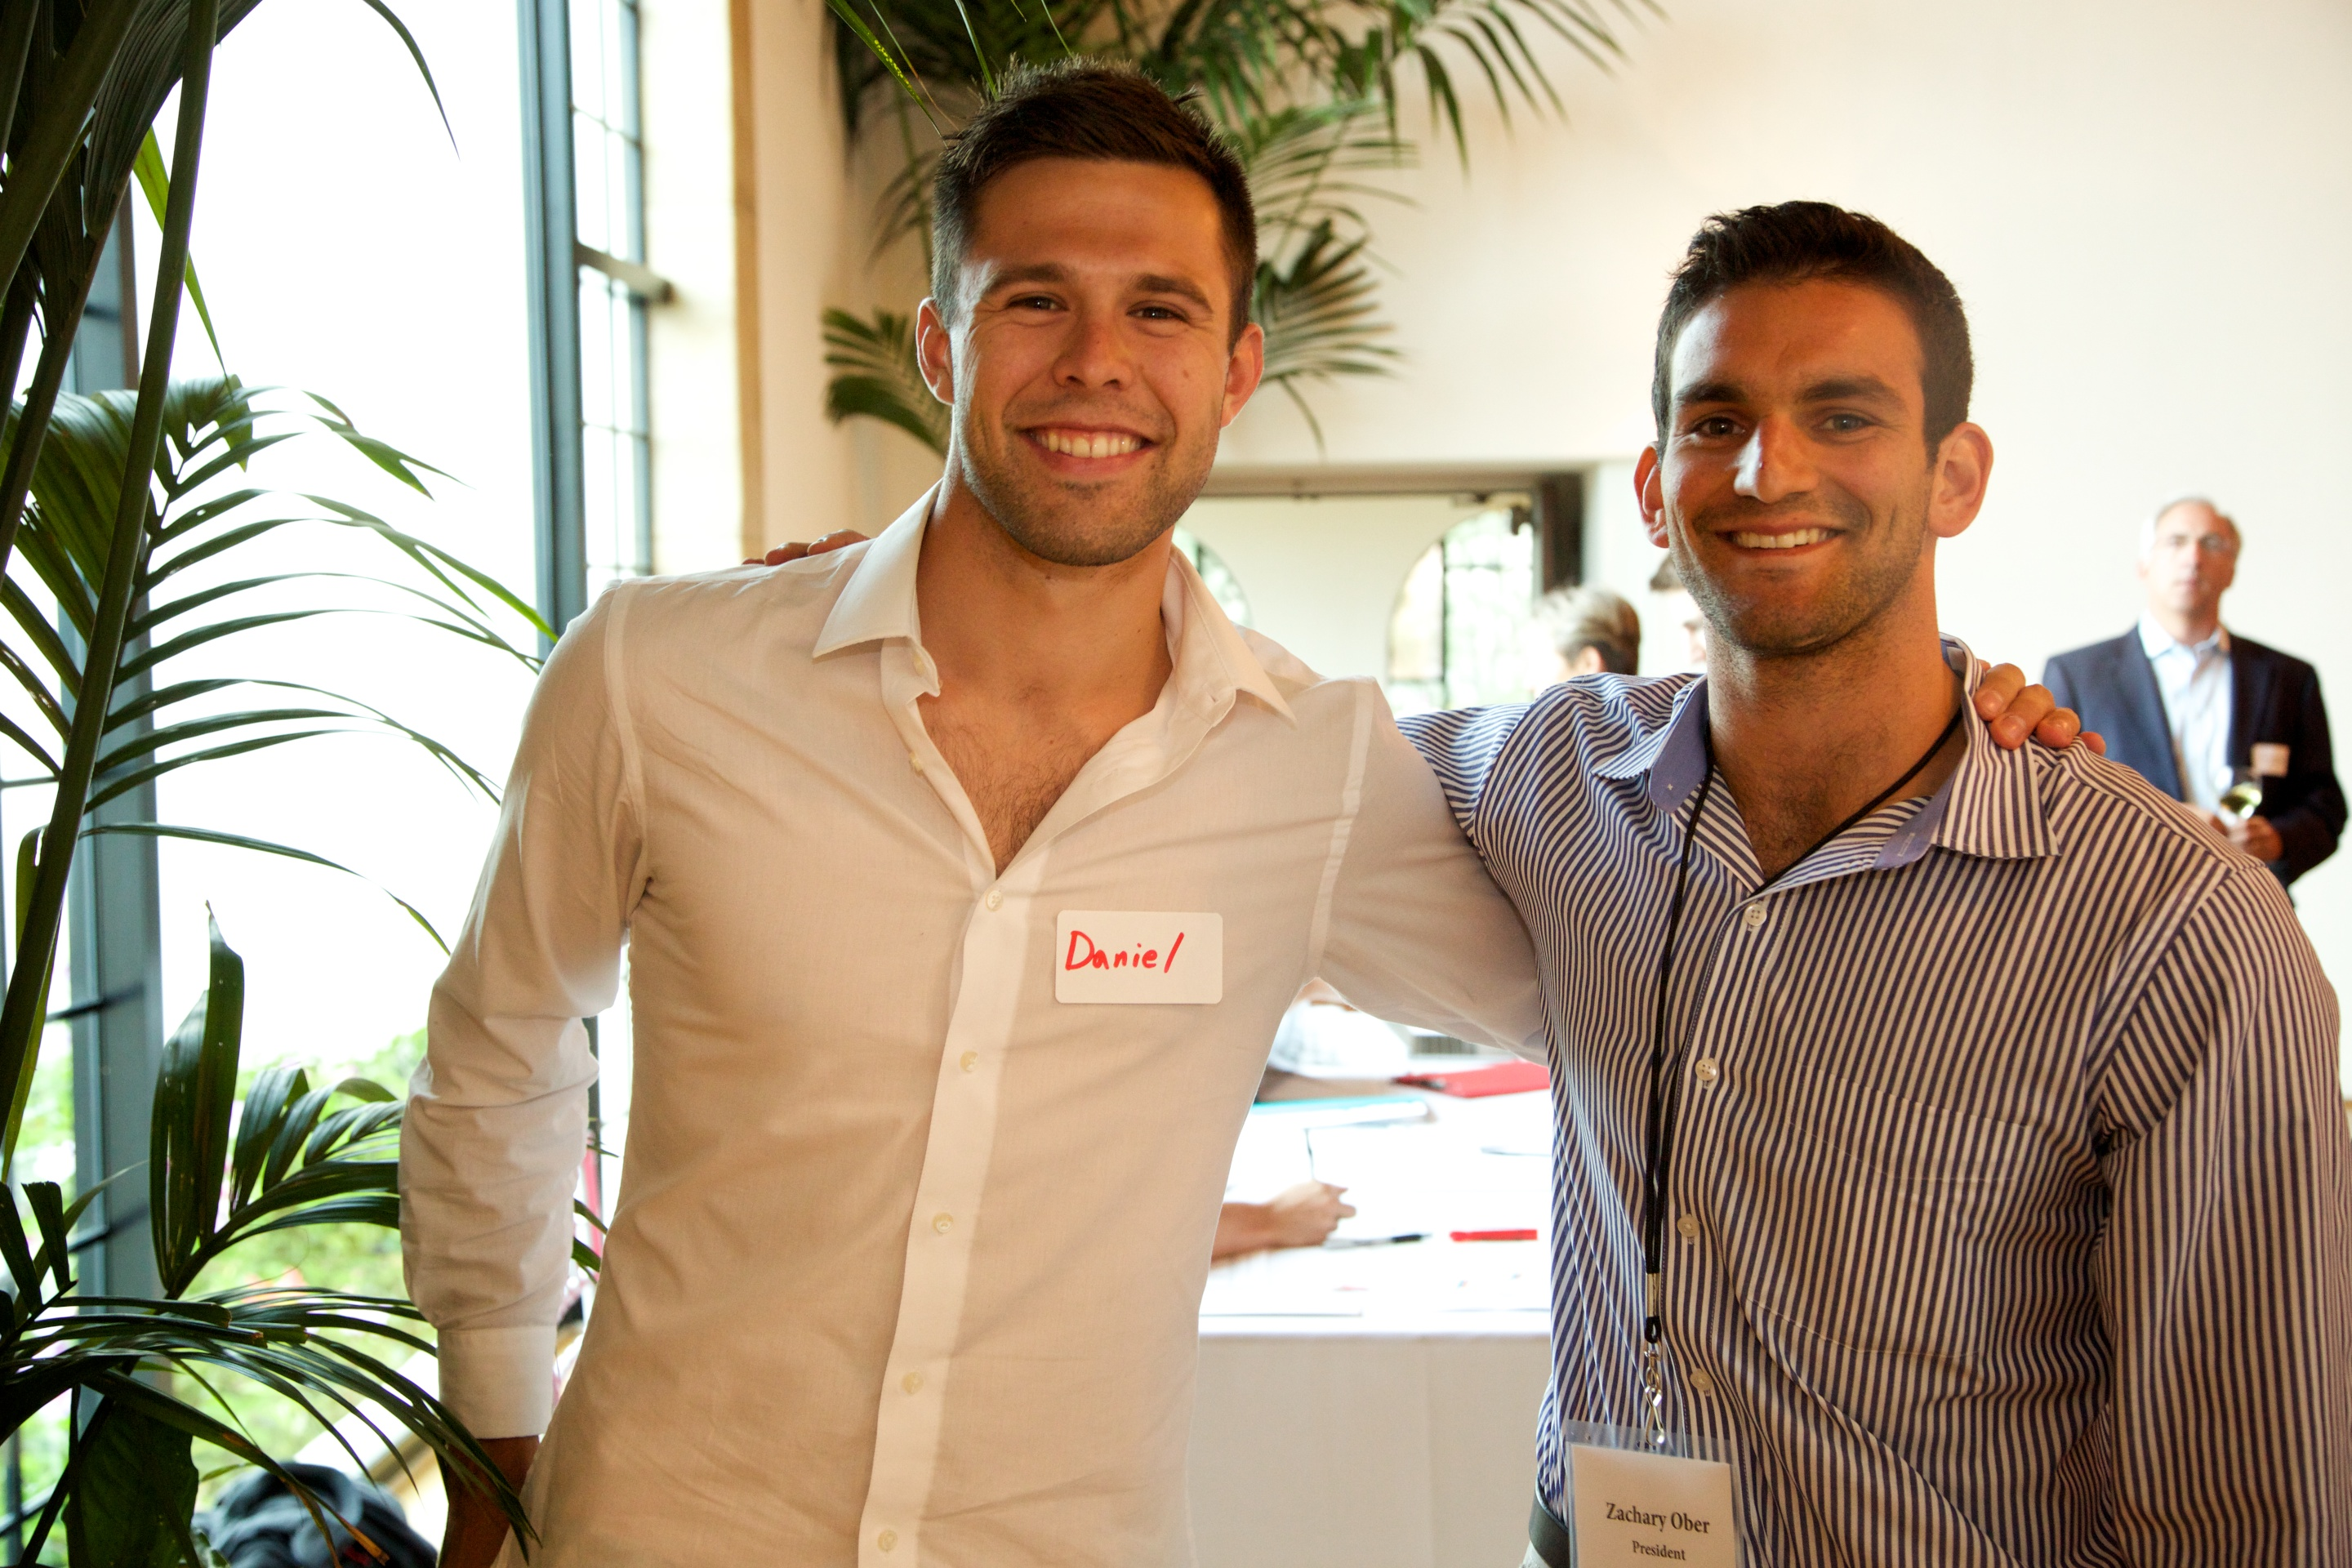 Two Entrepreneurs at Mentorship Works Networking Event